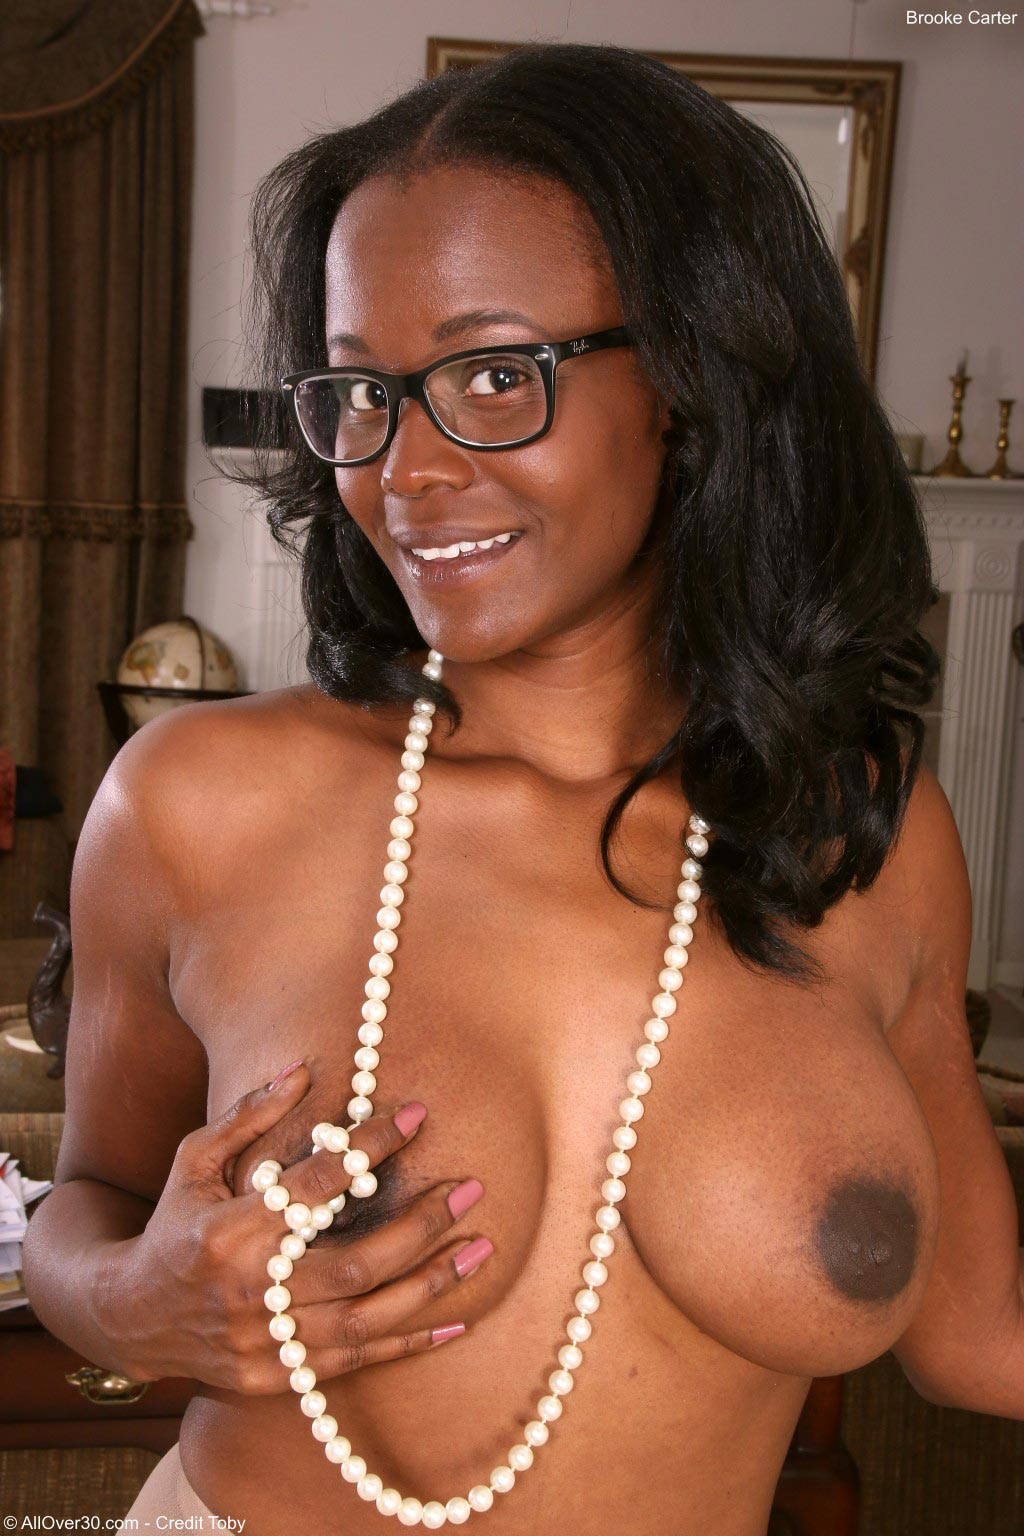 Busty Ebony MILF Brooke Carter on AllOver30